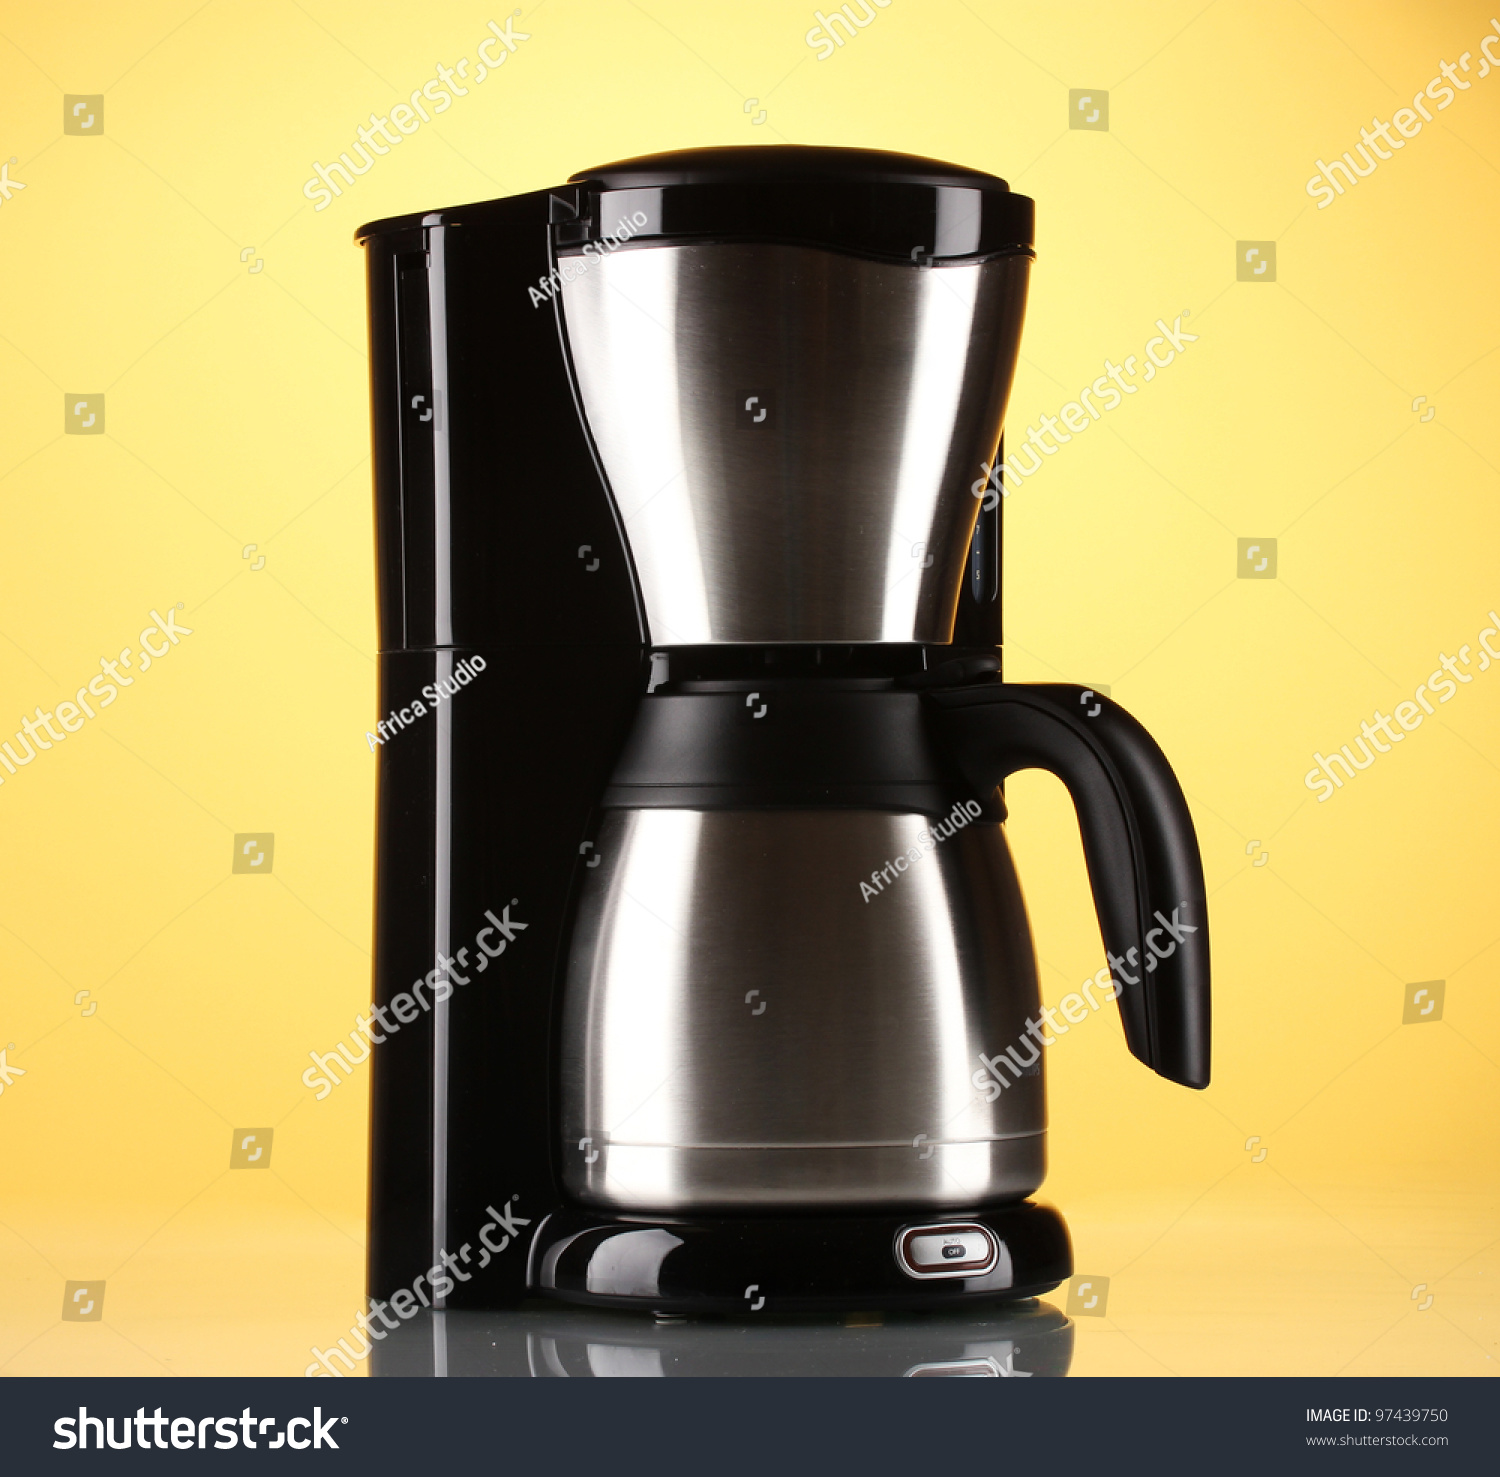 Coffee Maker On Yellow Background Stock Photo 97439750 - Shutterstock